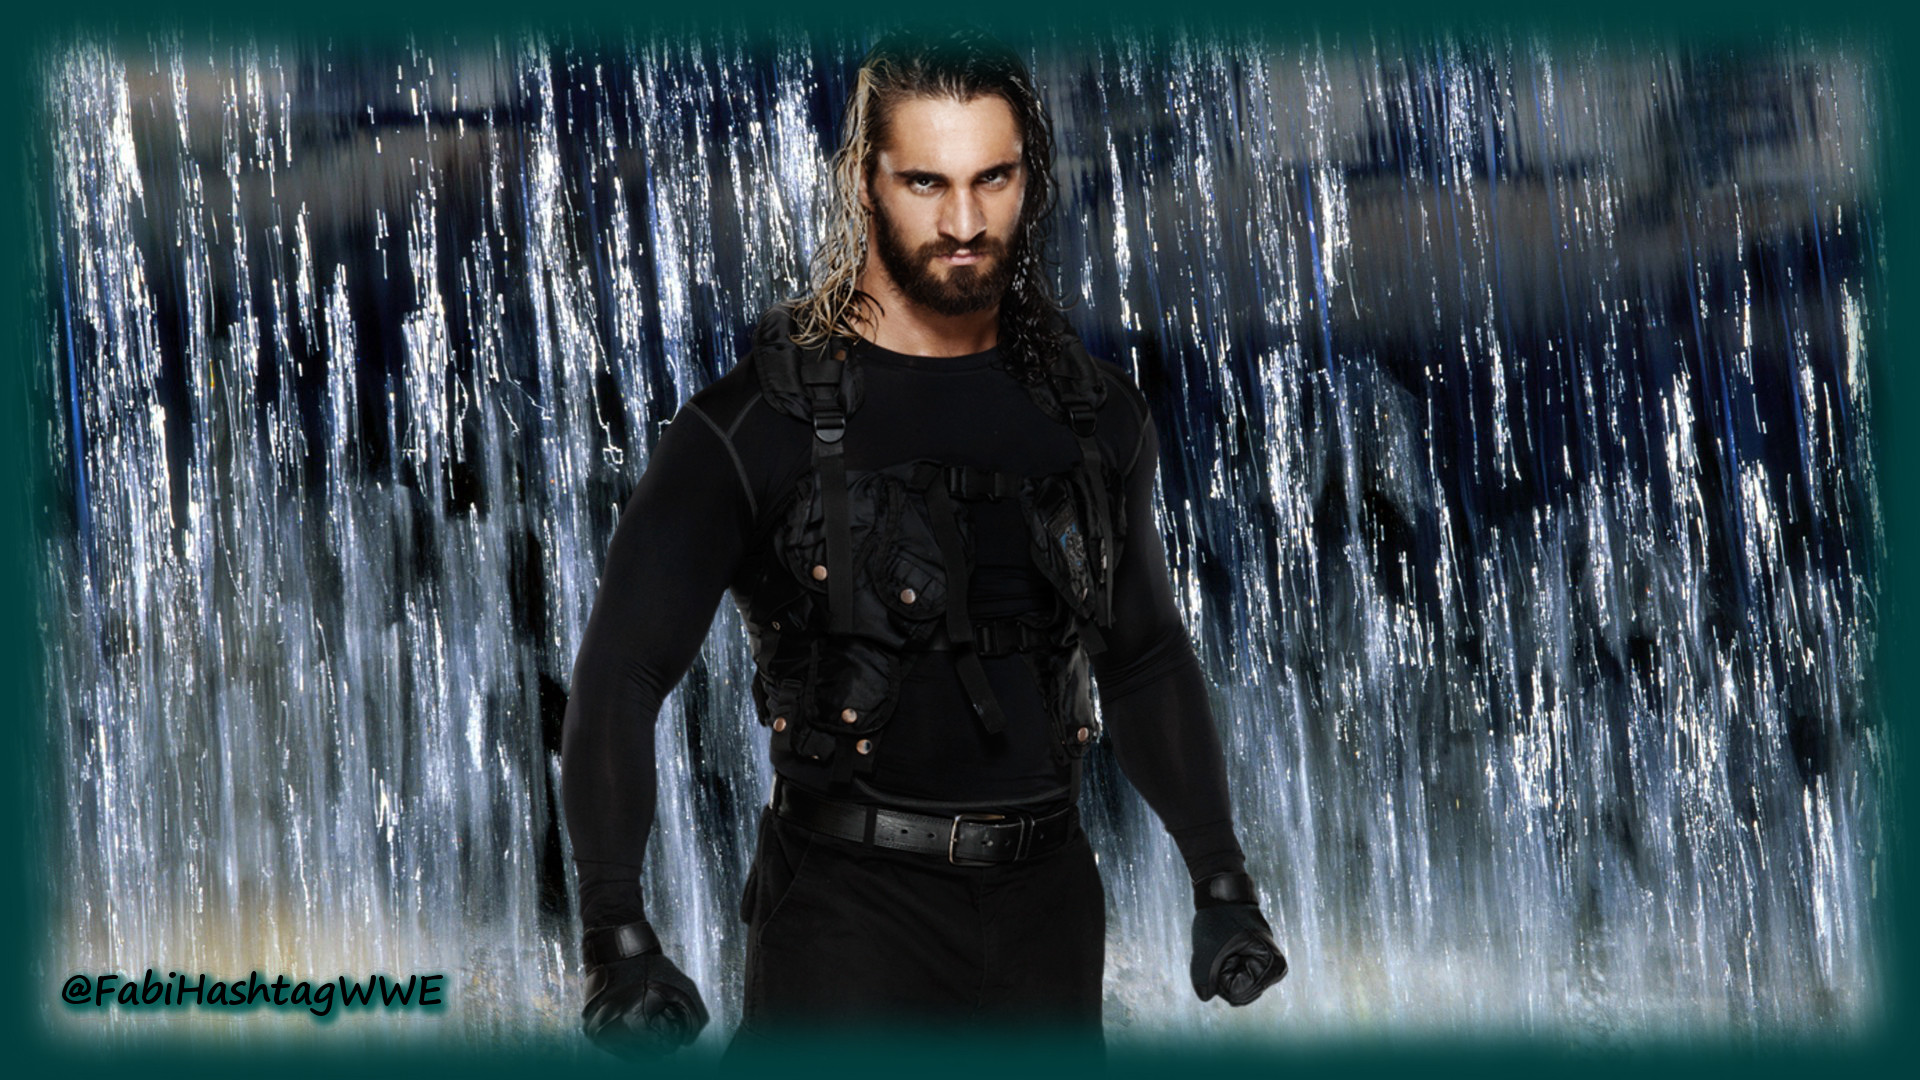 Seth Rollins HD Wallpaper (76+ Images